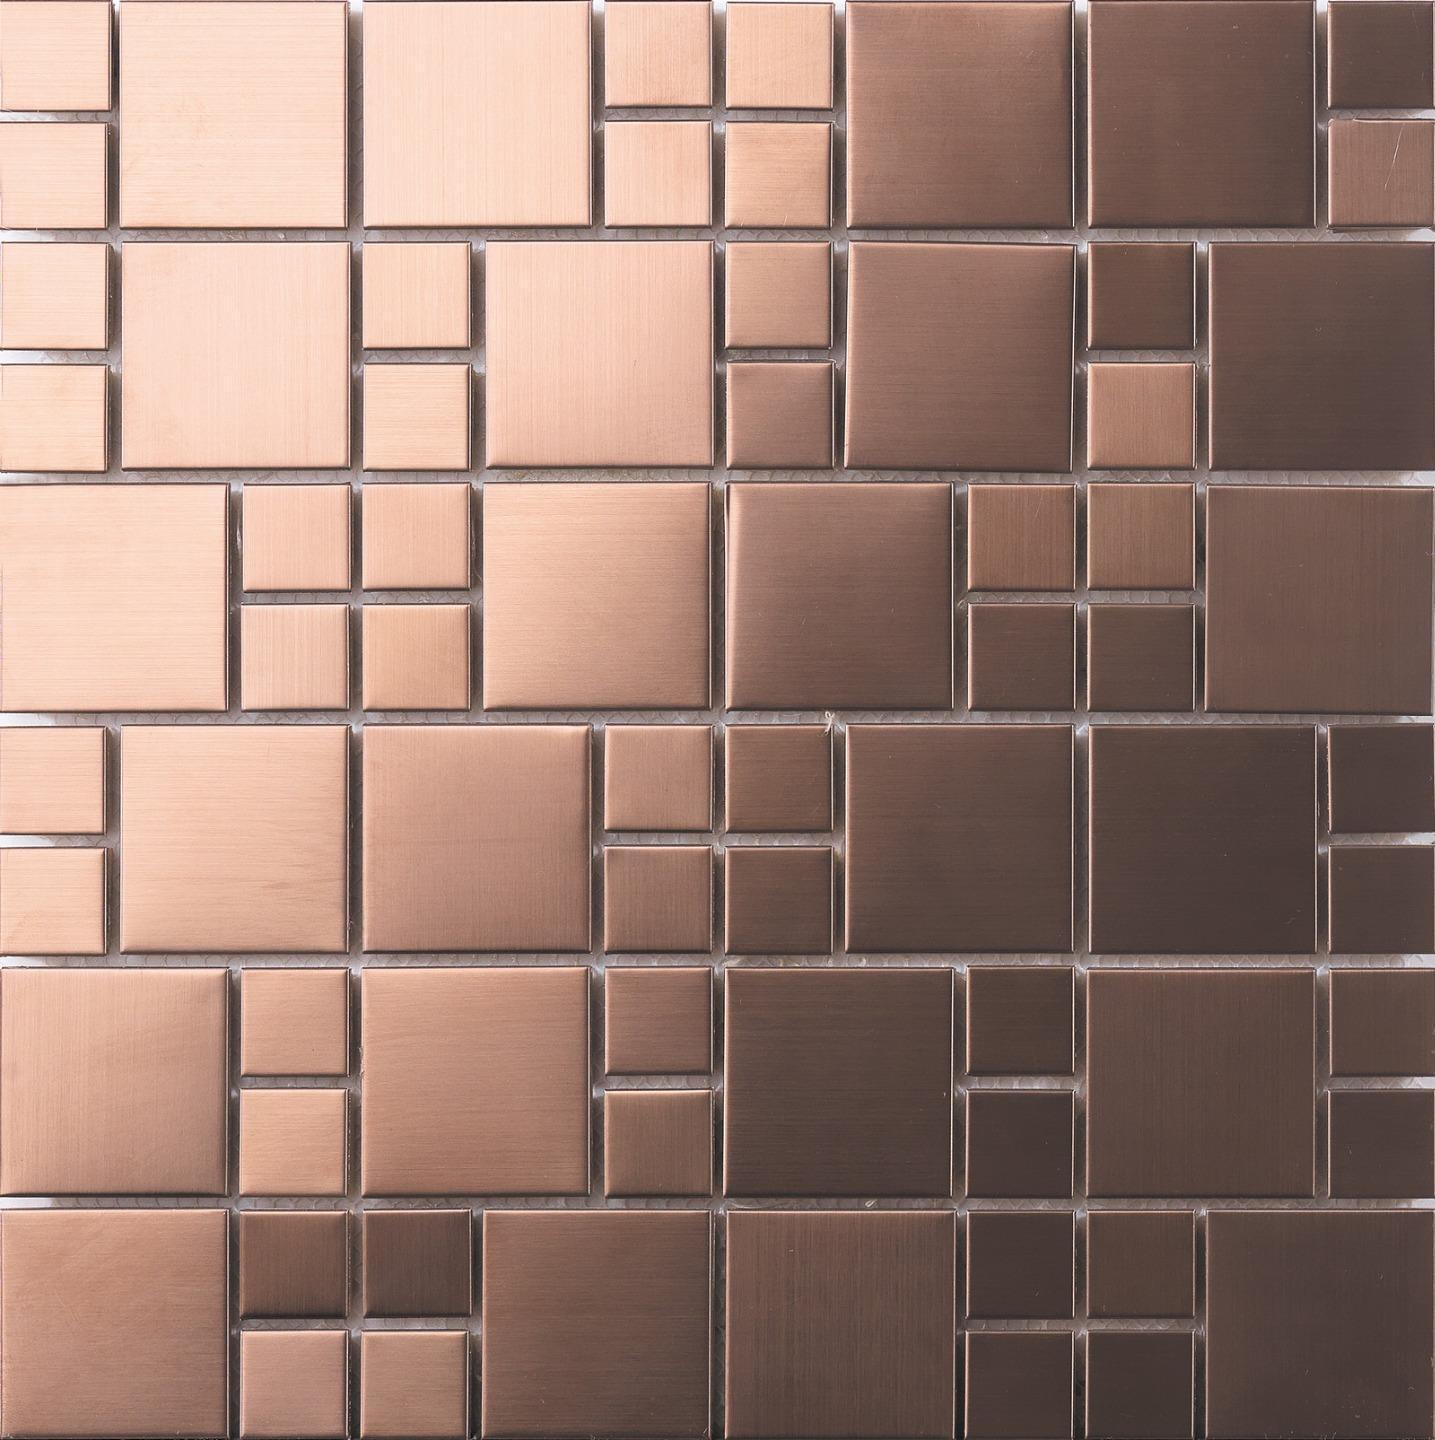 1 SQ M Brushed Copper Effect Stainless Steel Mosaic Tiles 0174